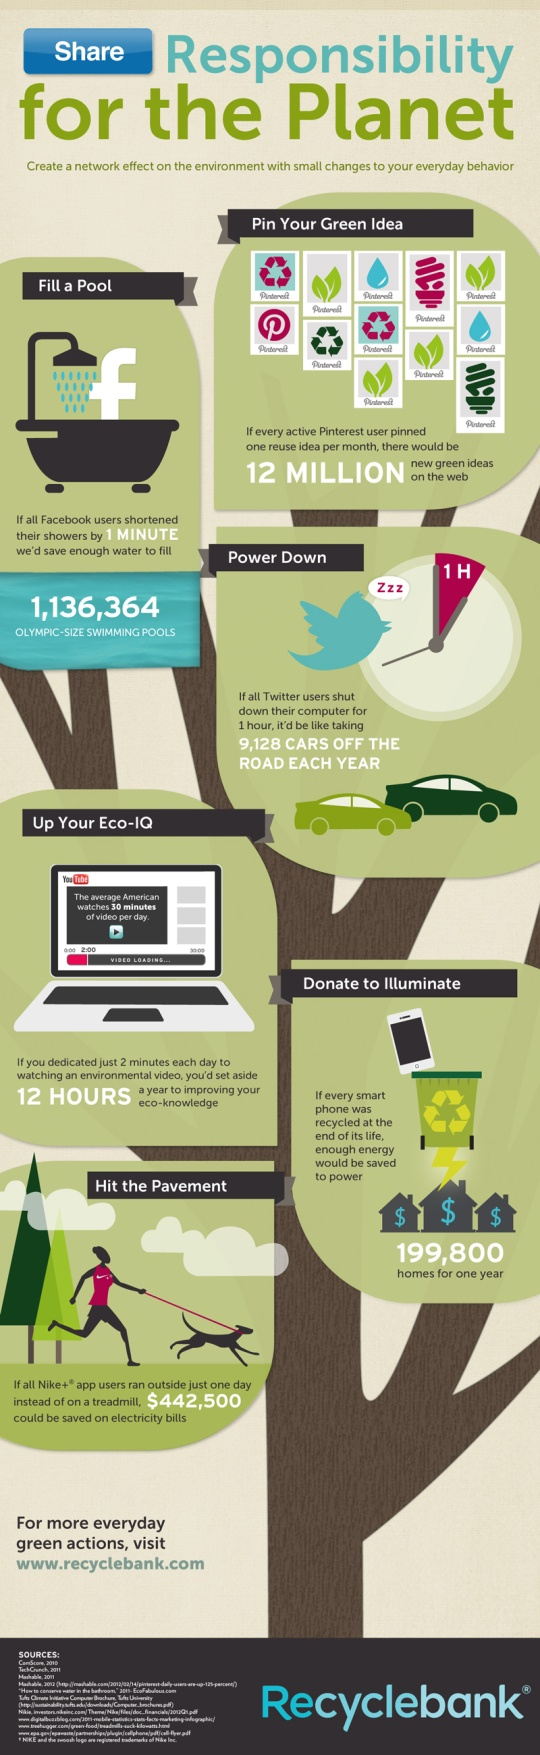 Tips on How to Celebrate Earth Day! http://shopanthropic.wordpress.com/2013/04/18/earth-day-everyday-tips-on-how-to-celebrate-earth-day-earthday2013-eco-environment/ #Earthday2013 #Eco #Environment